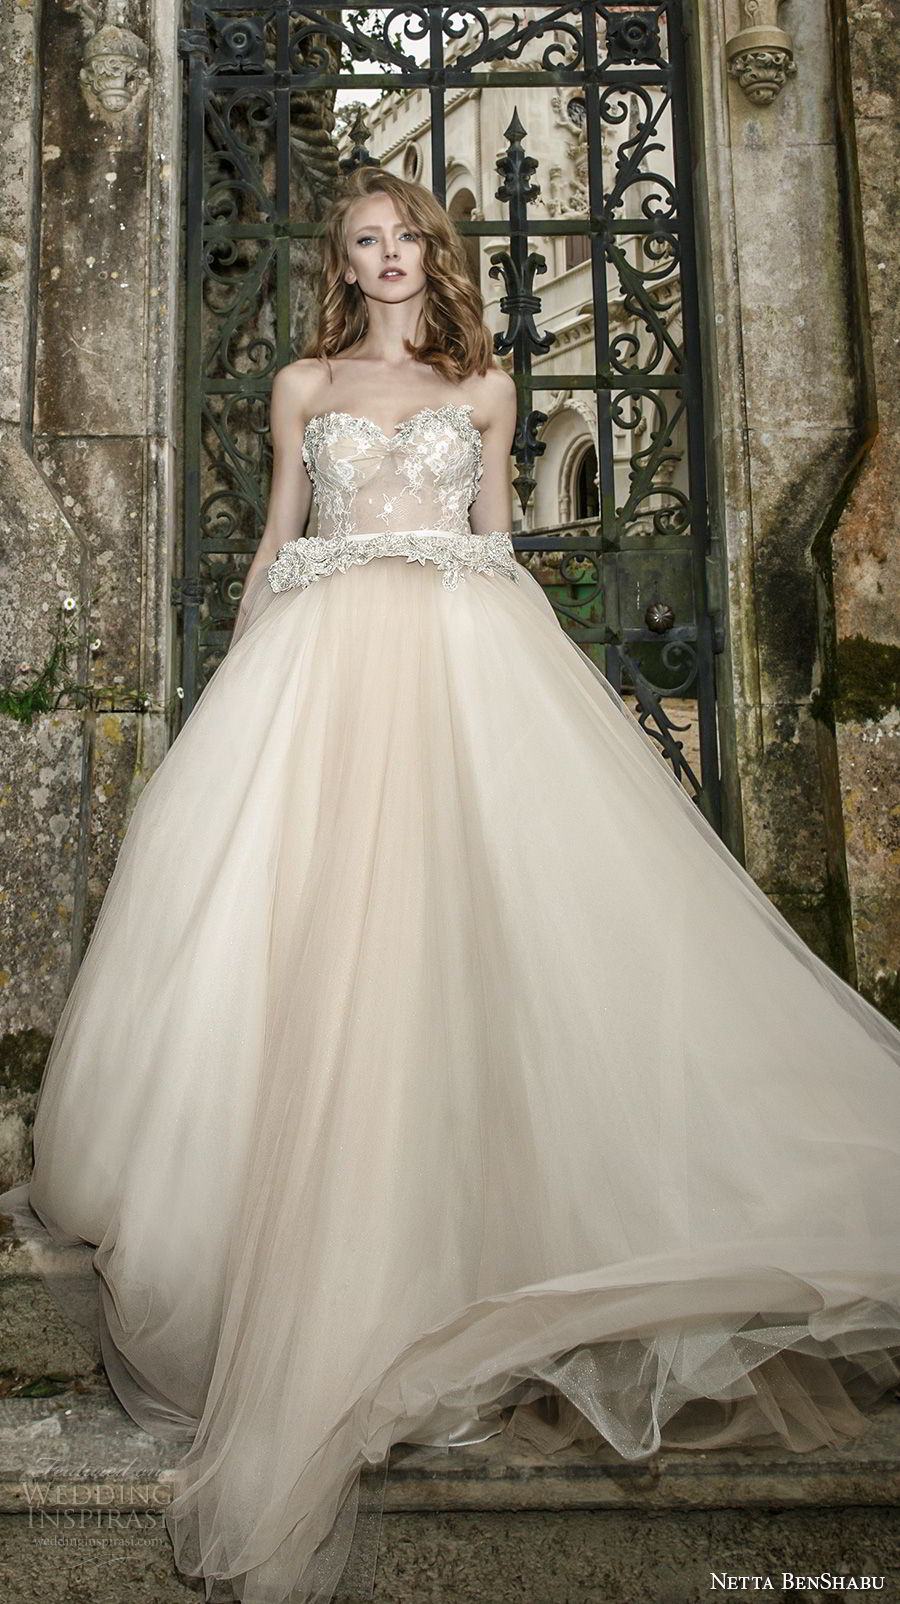 netta benshabu 2017 bridal strapless sweetheart neckline heavily embellished bodice nude color romantic a line wedding dress chapel train (7) mv